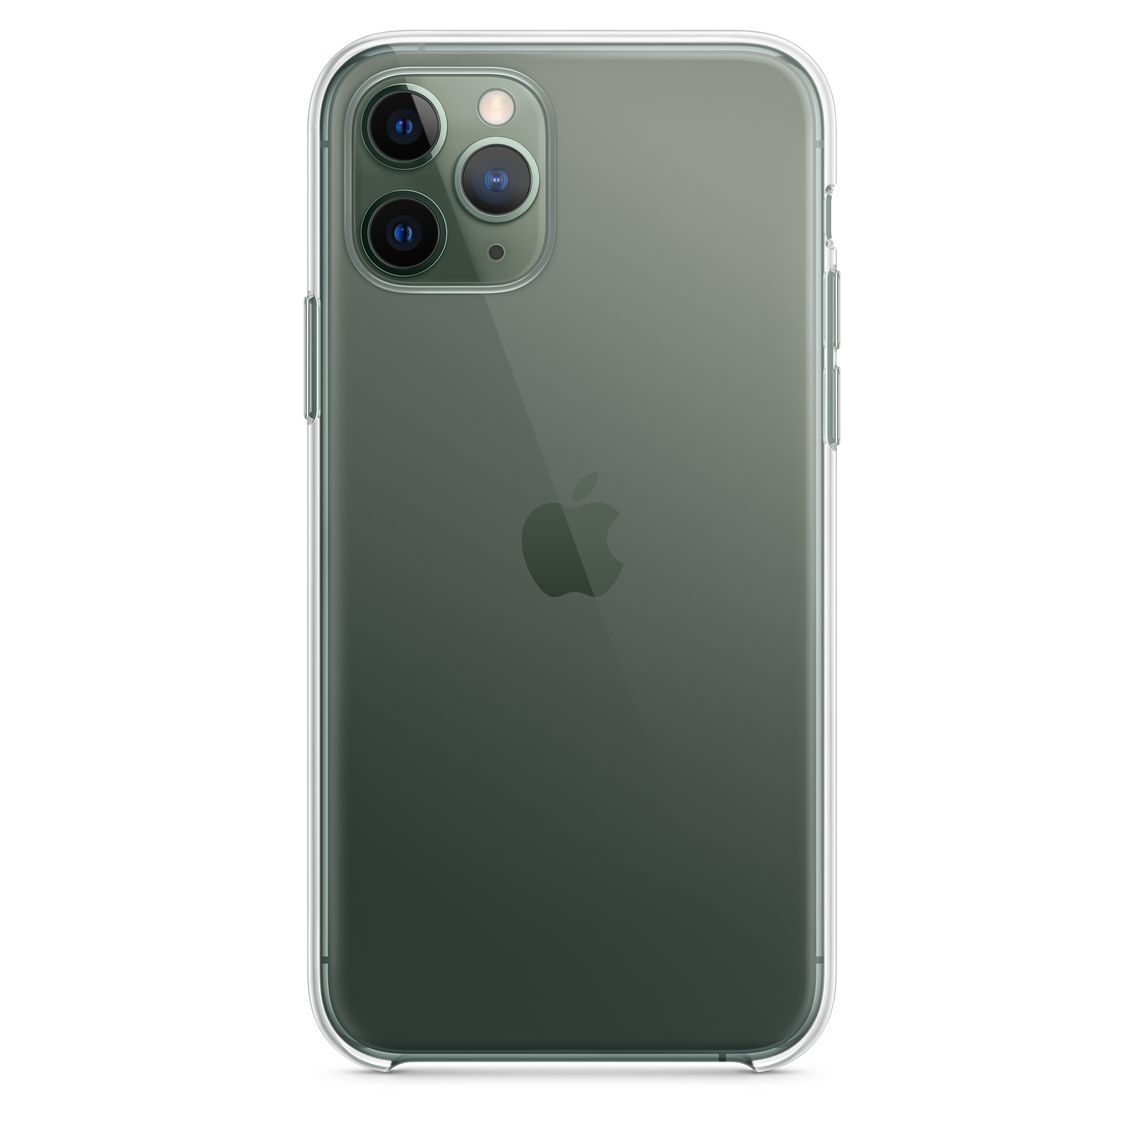 iphone 11 pro case clear apple. Black Bedroom Furniture Sets. Home Design Ideas